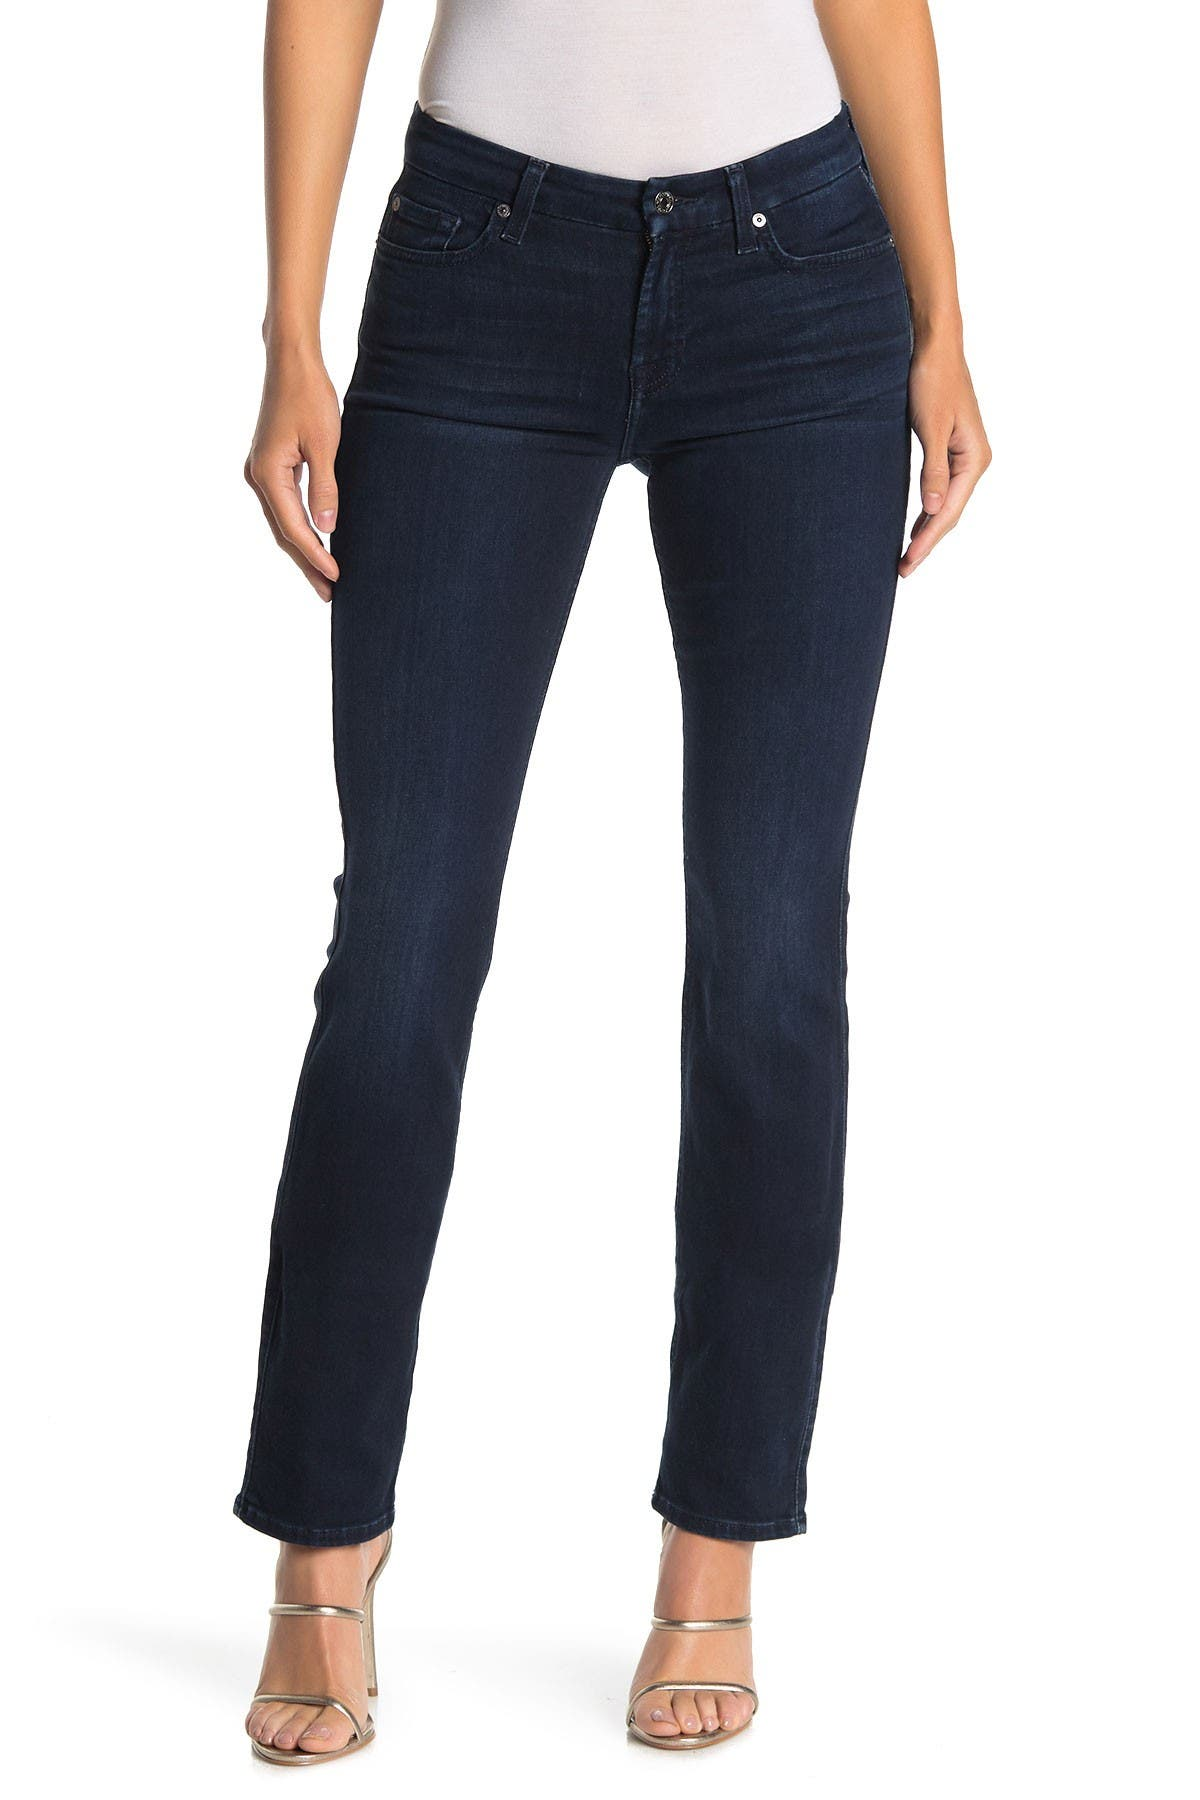 Image of 7 For All Mankind Kimmie Straight Leg Jeans